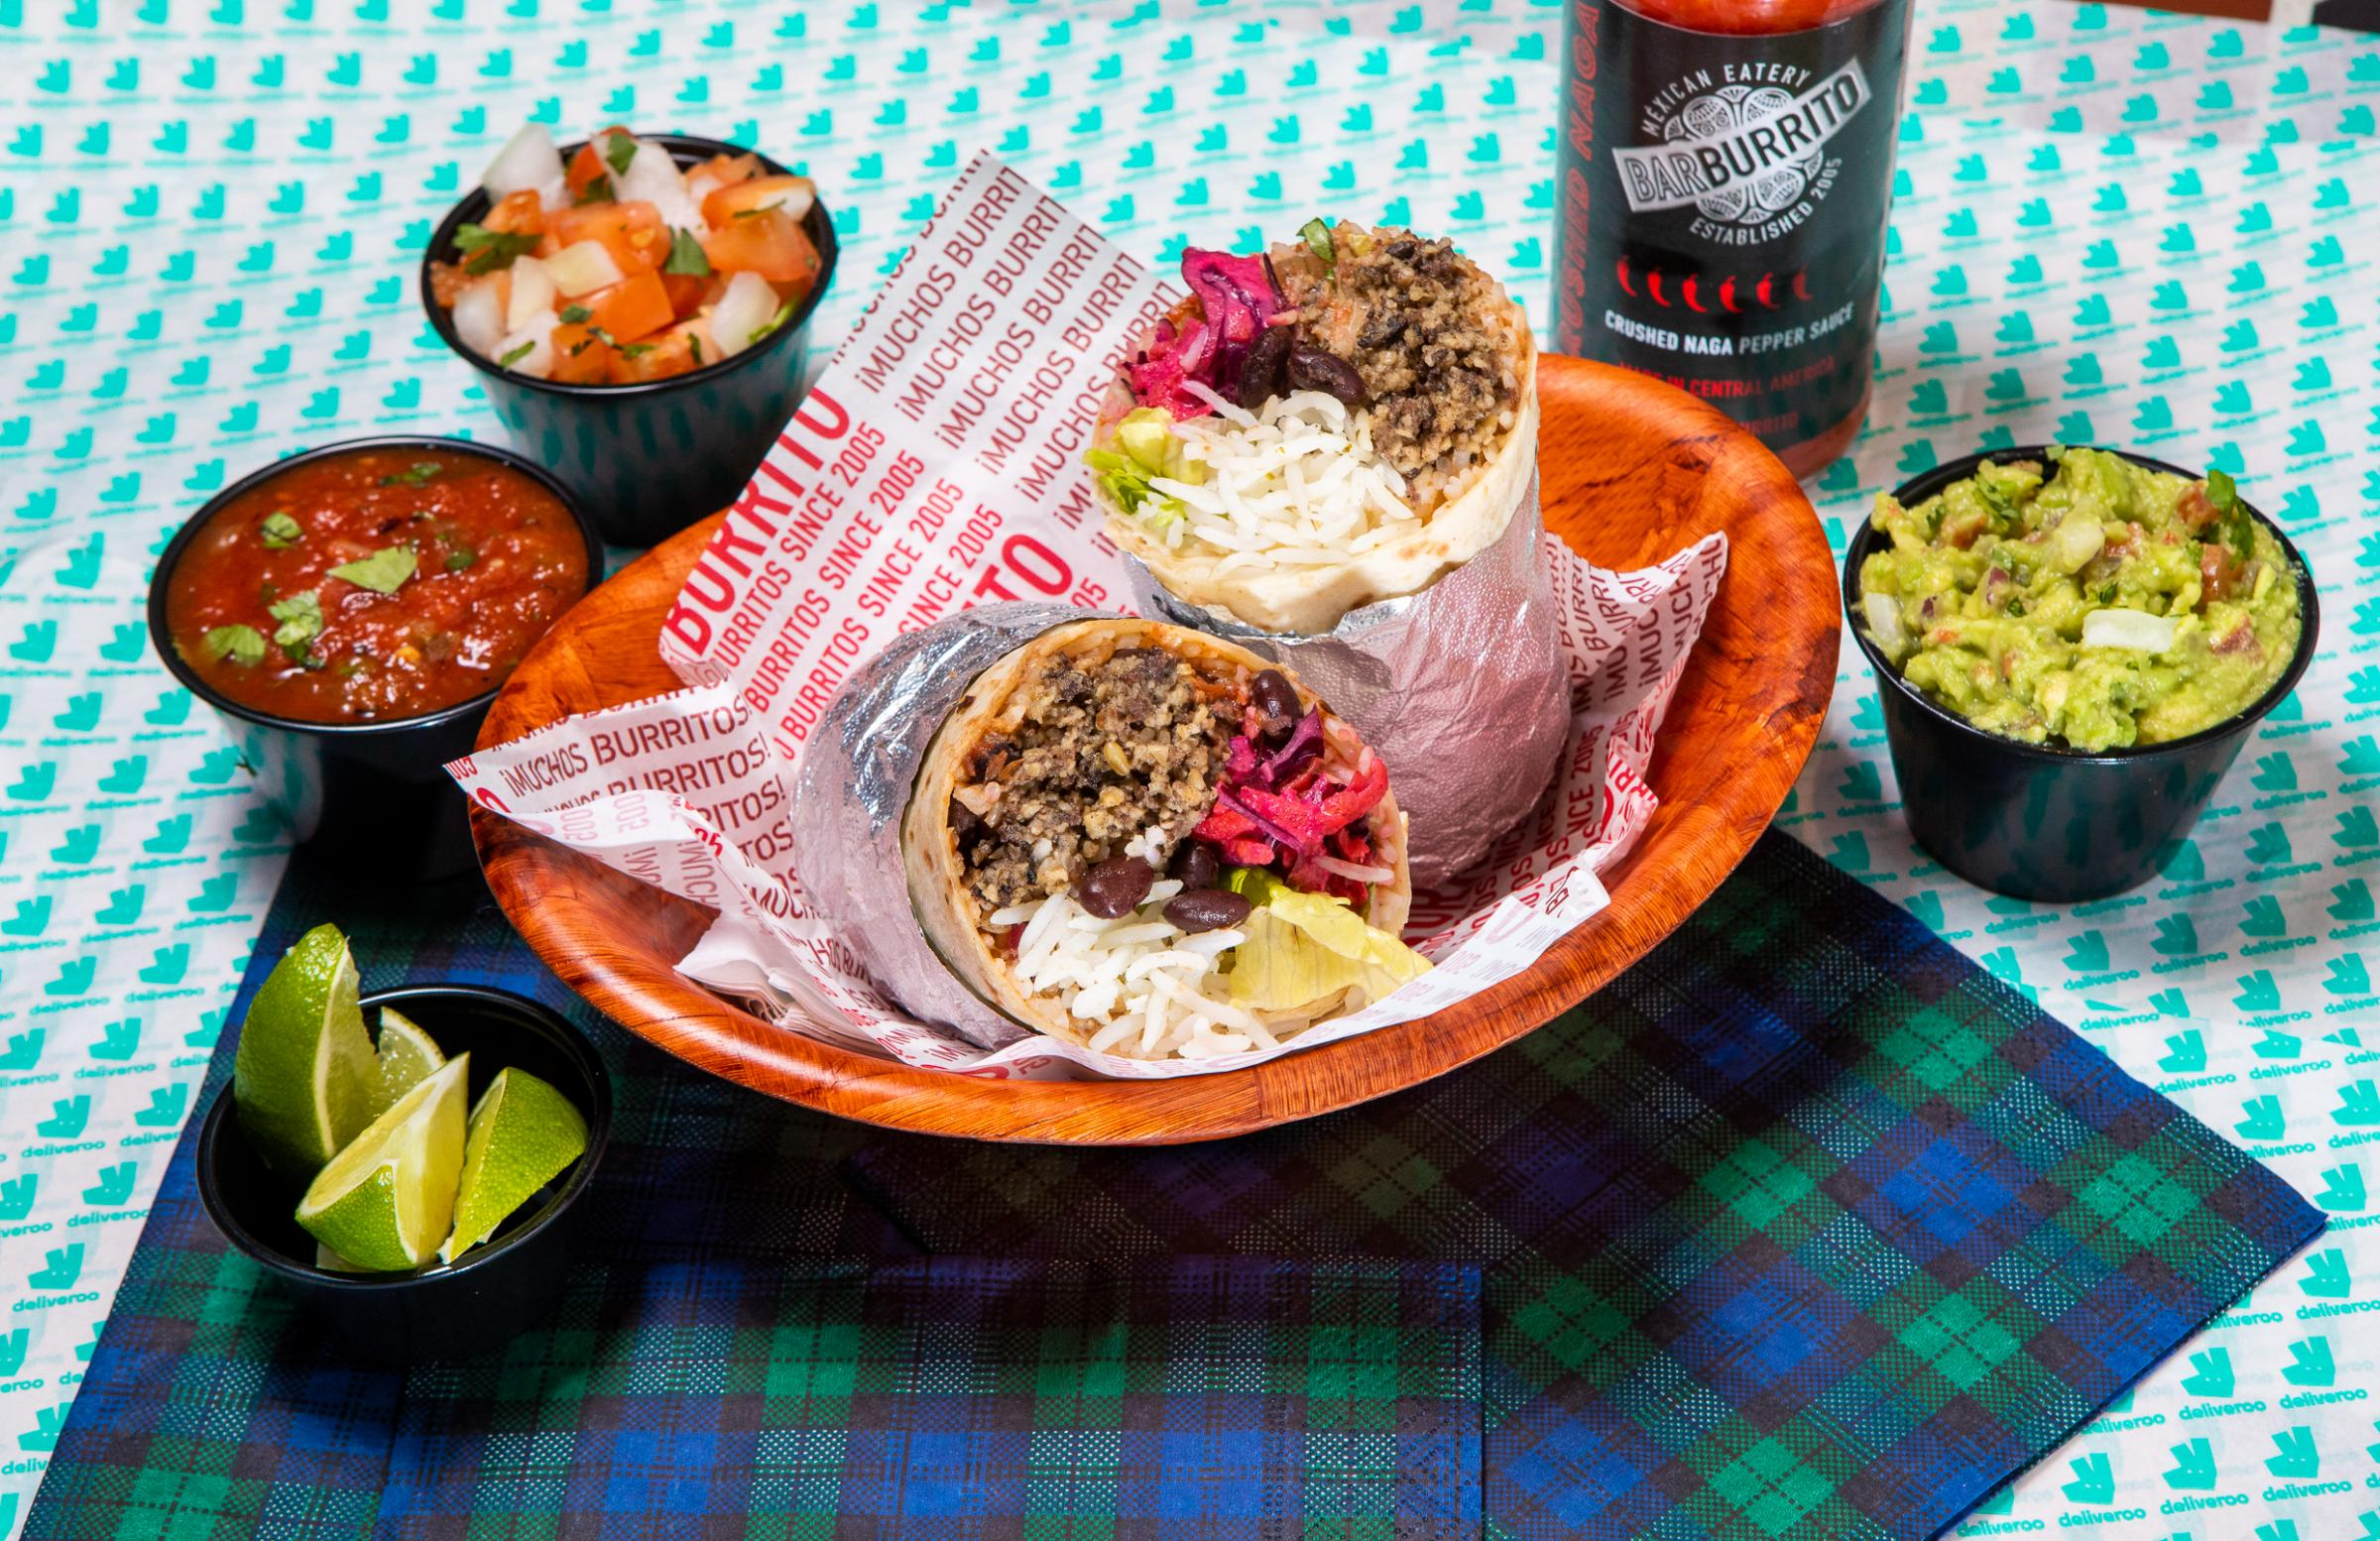 The burrito uses Macswean haggis and costs £8.45